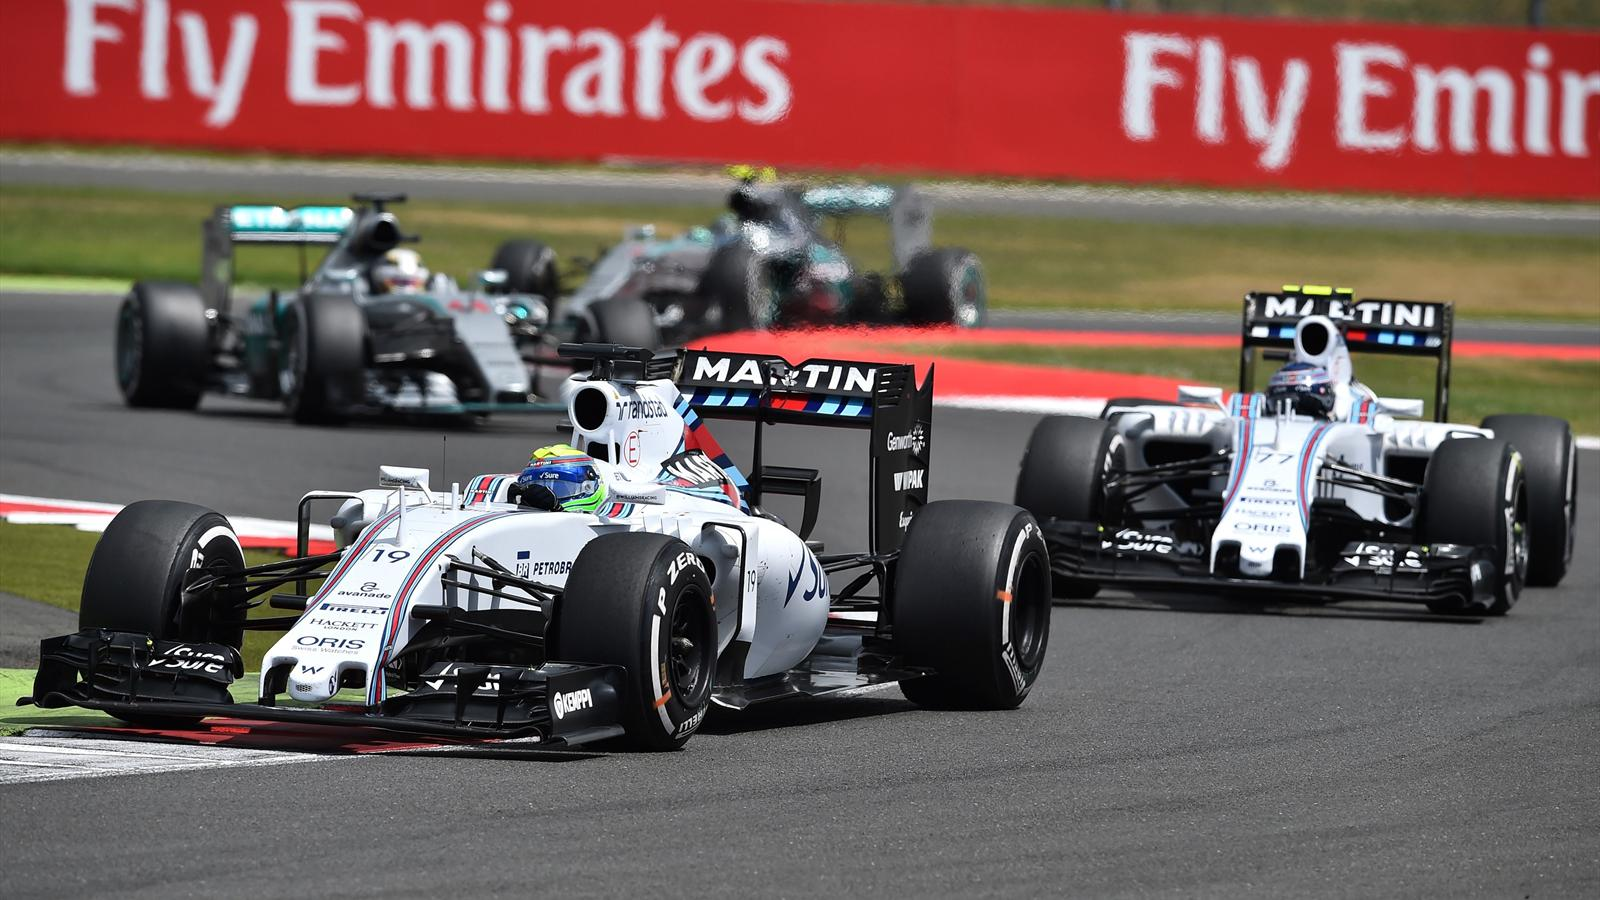 bonus malus hamilton strat ge bottas bloqu r ikk nen chou grand prix de grande bretagne. Black Bedroom Furniture Sets. Home Design Ideas